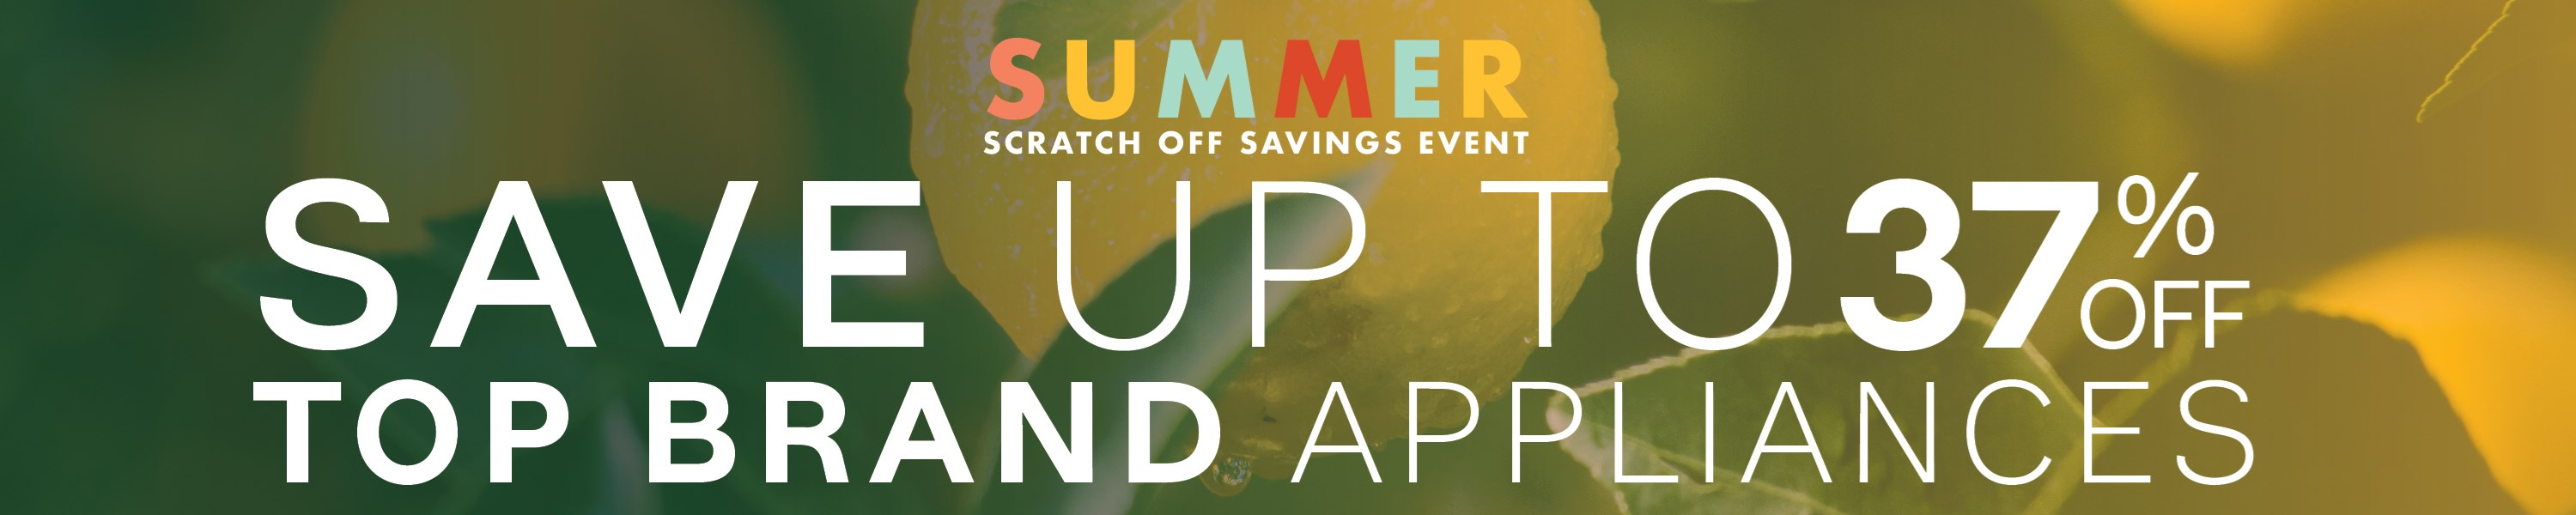 Furniture & ApplianceMart Summer Scratch Off Savings Event